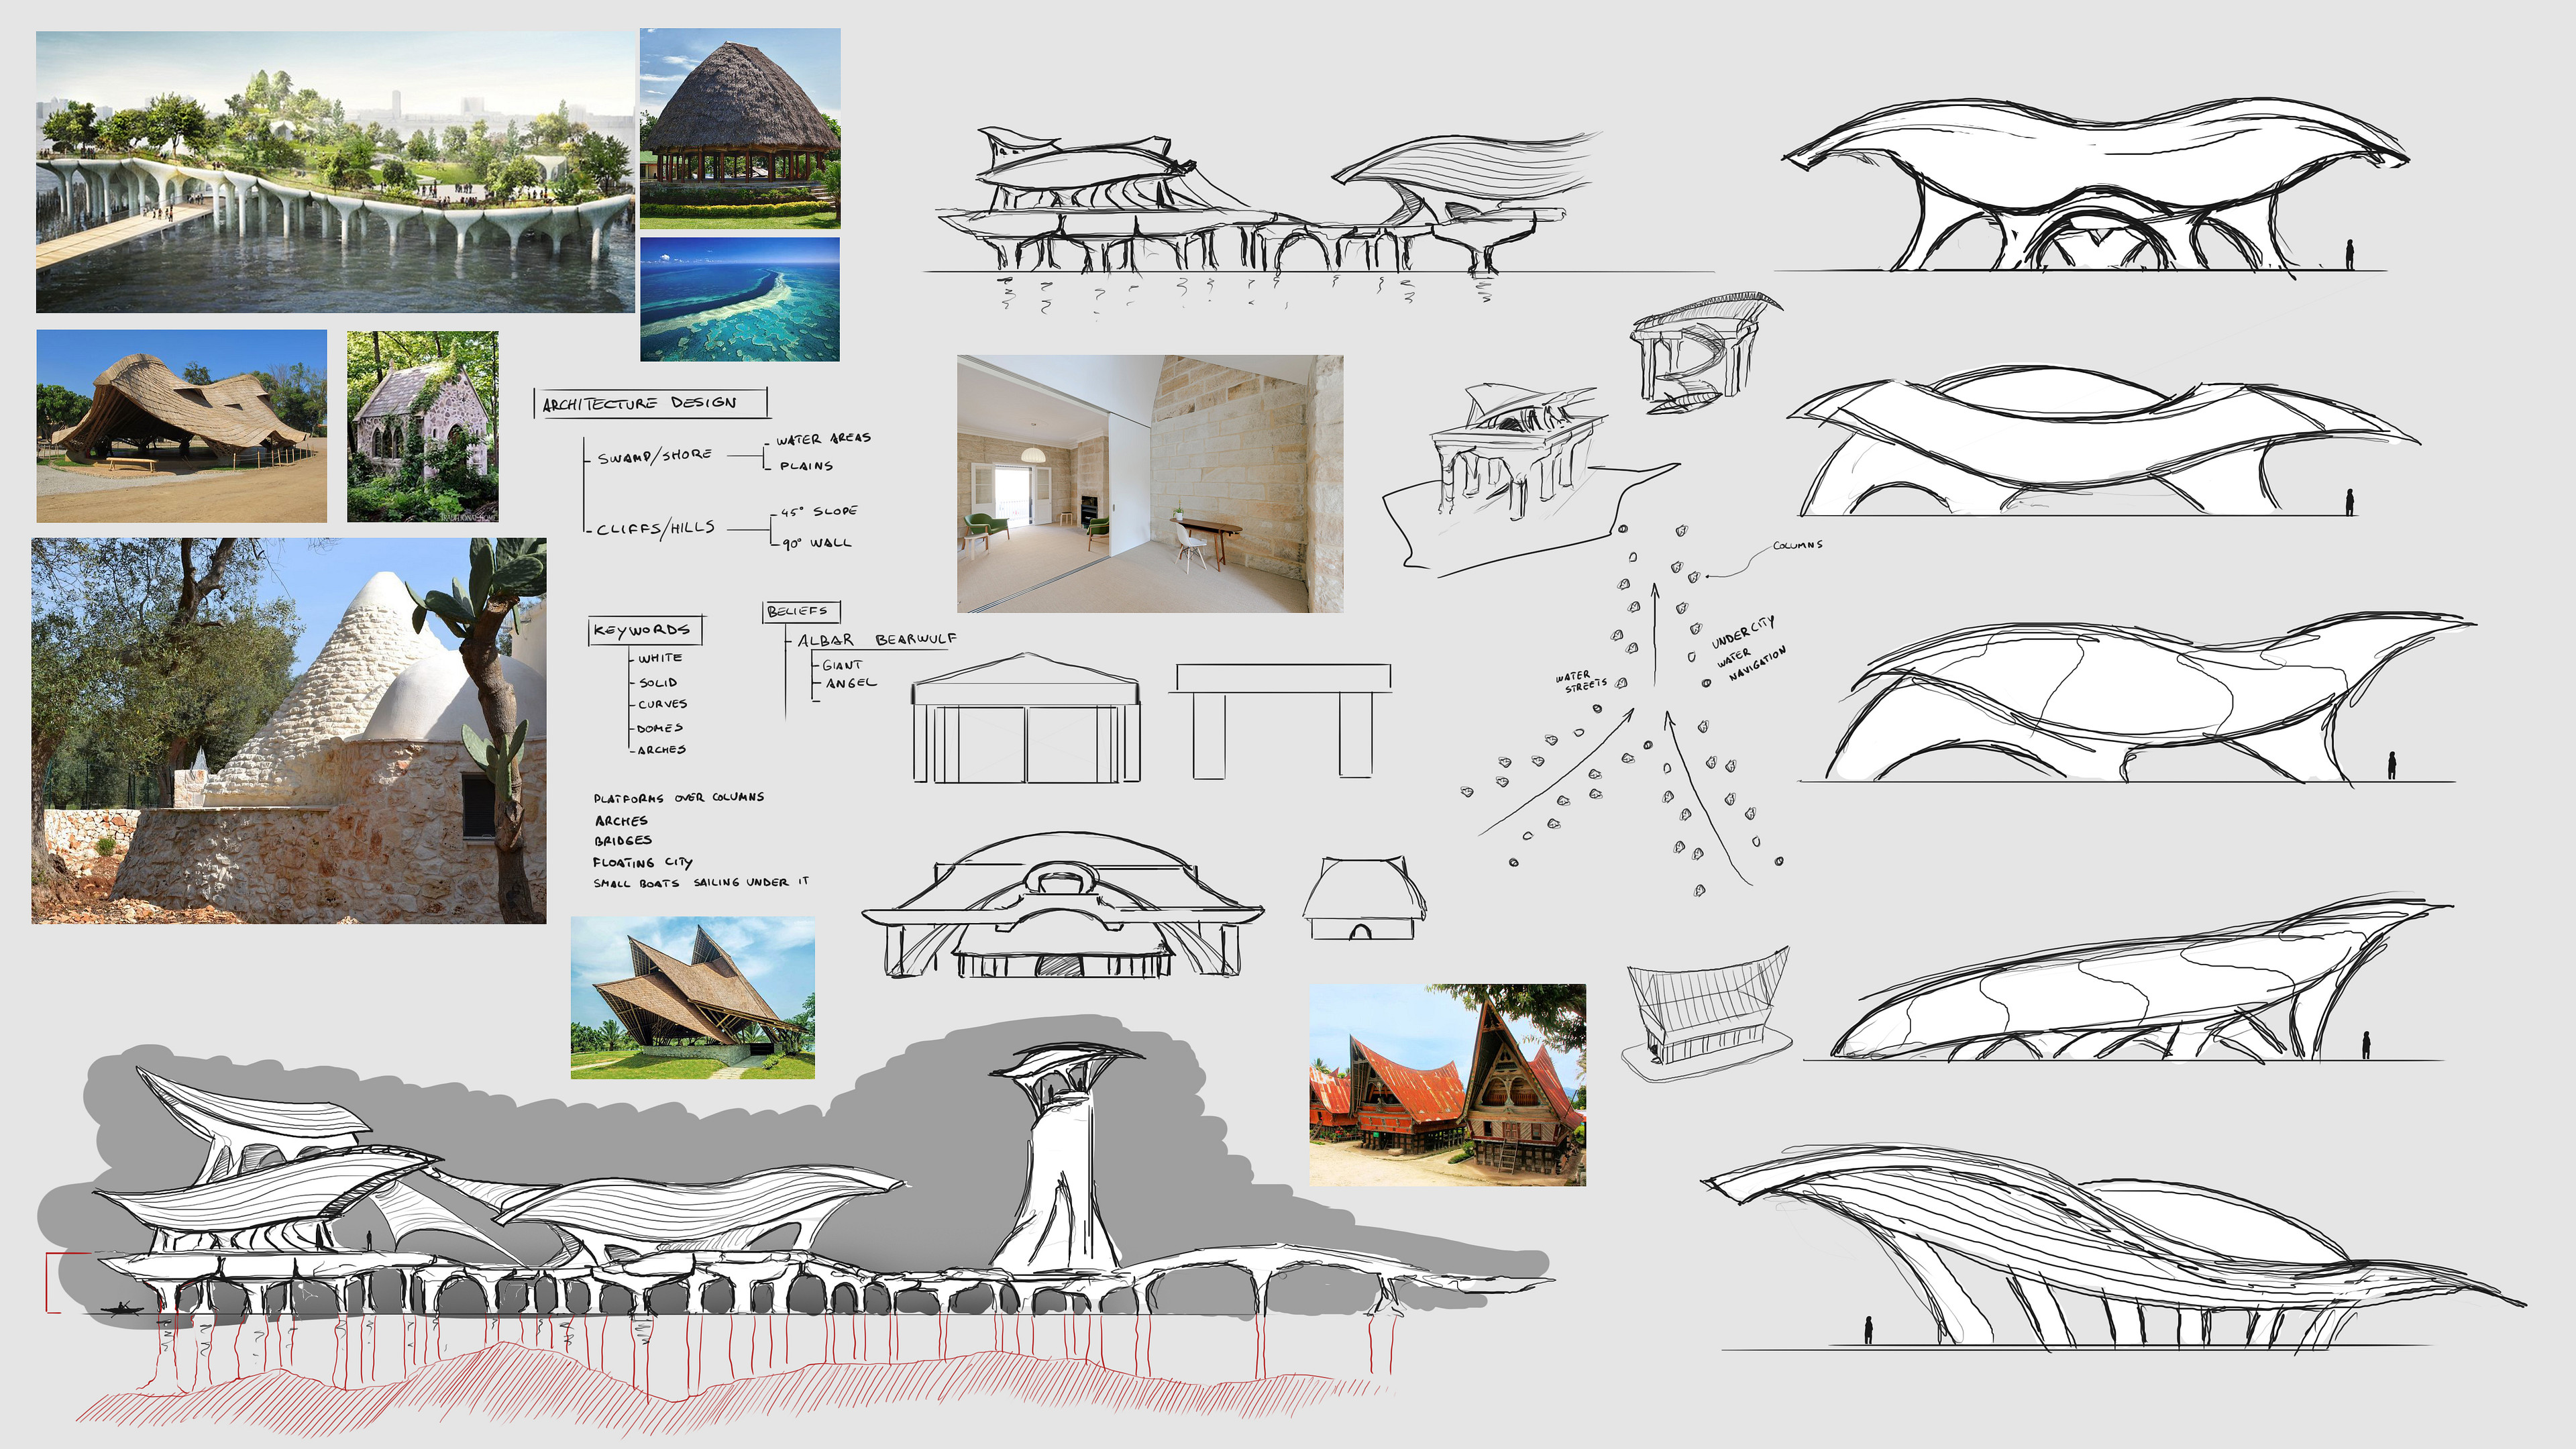 Very early development stage, exploring the possible shapes and style of this culture's buildings.